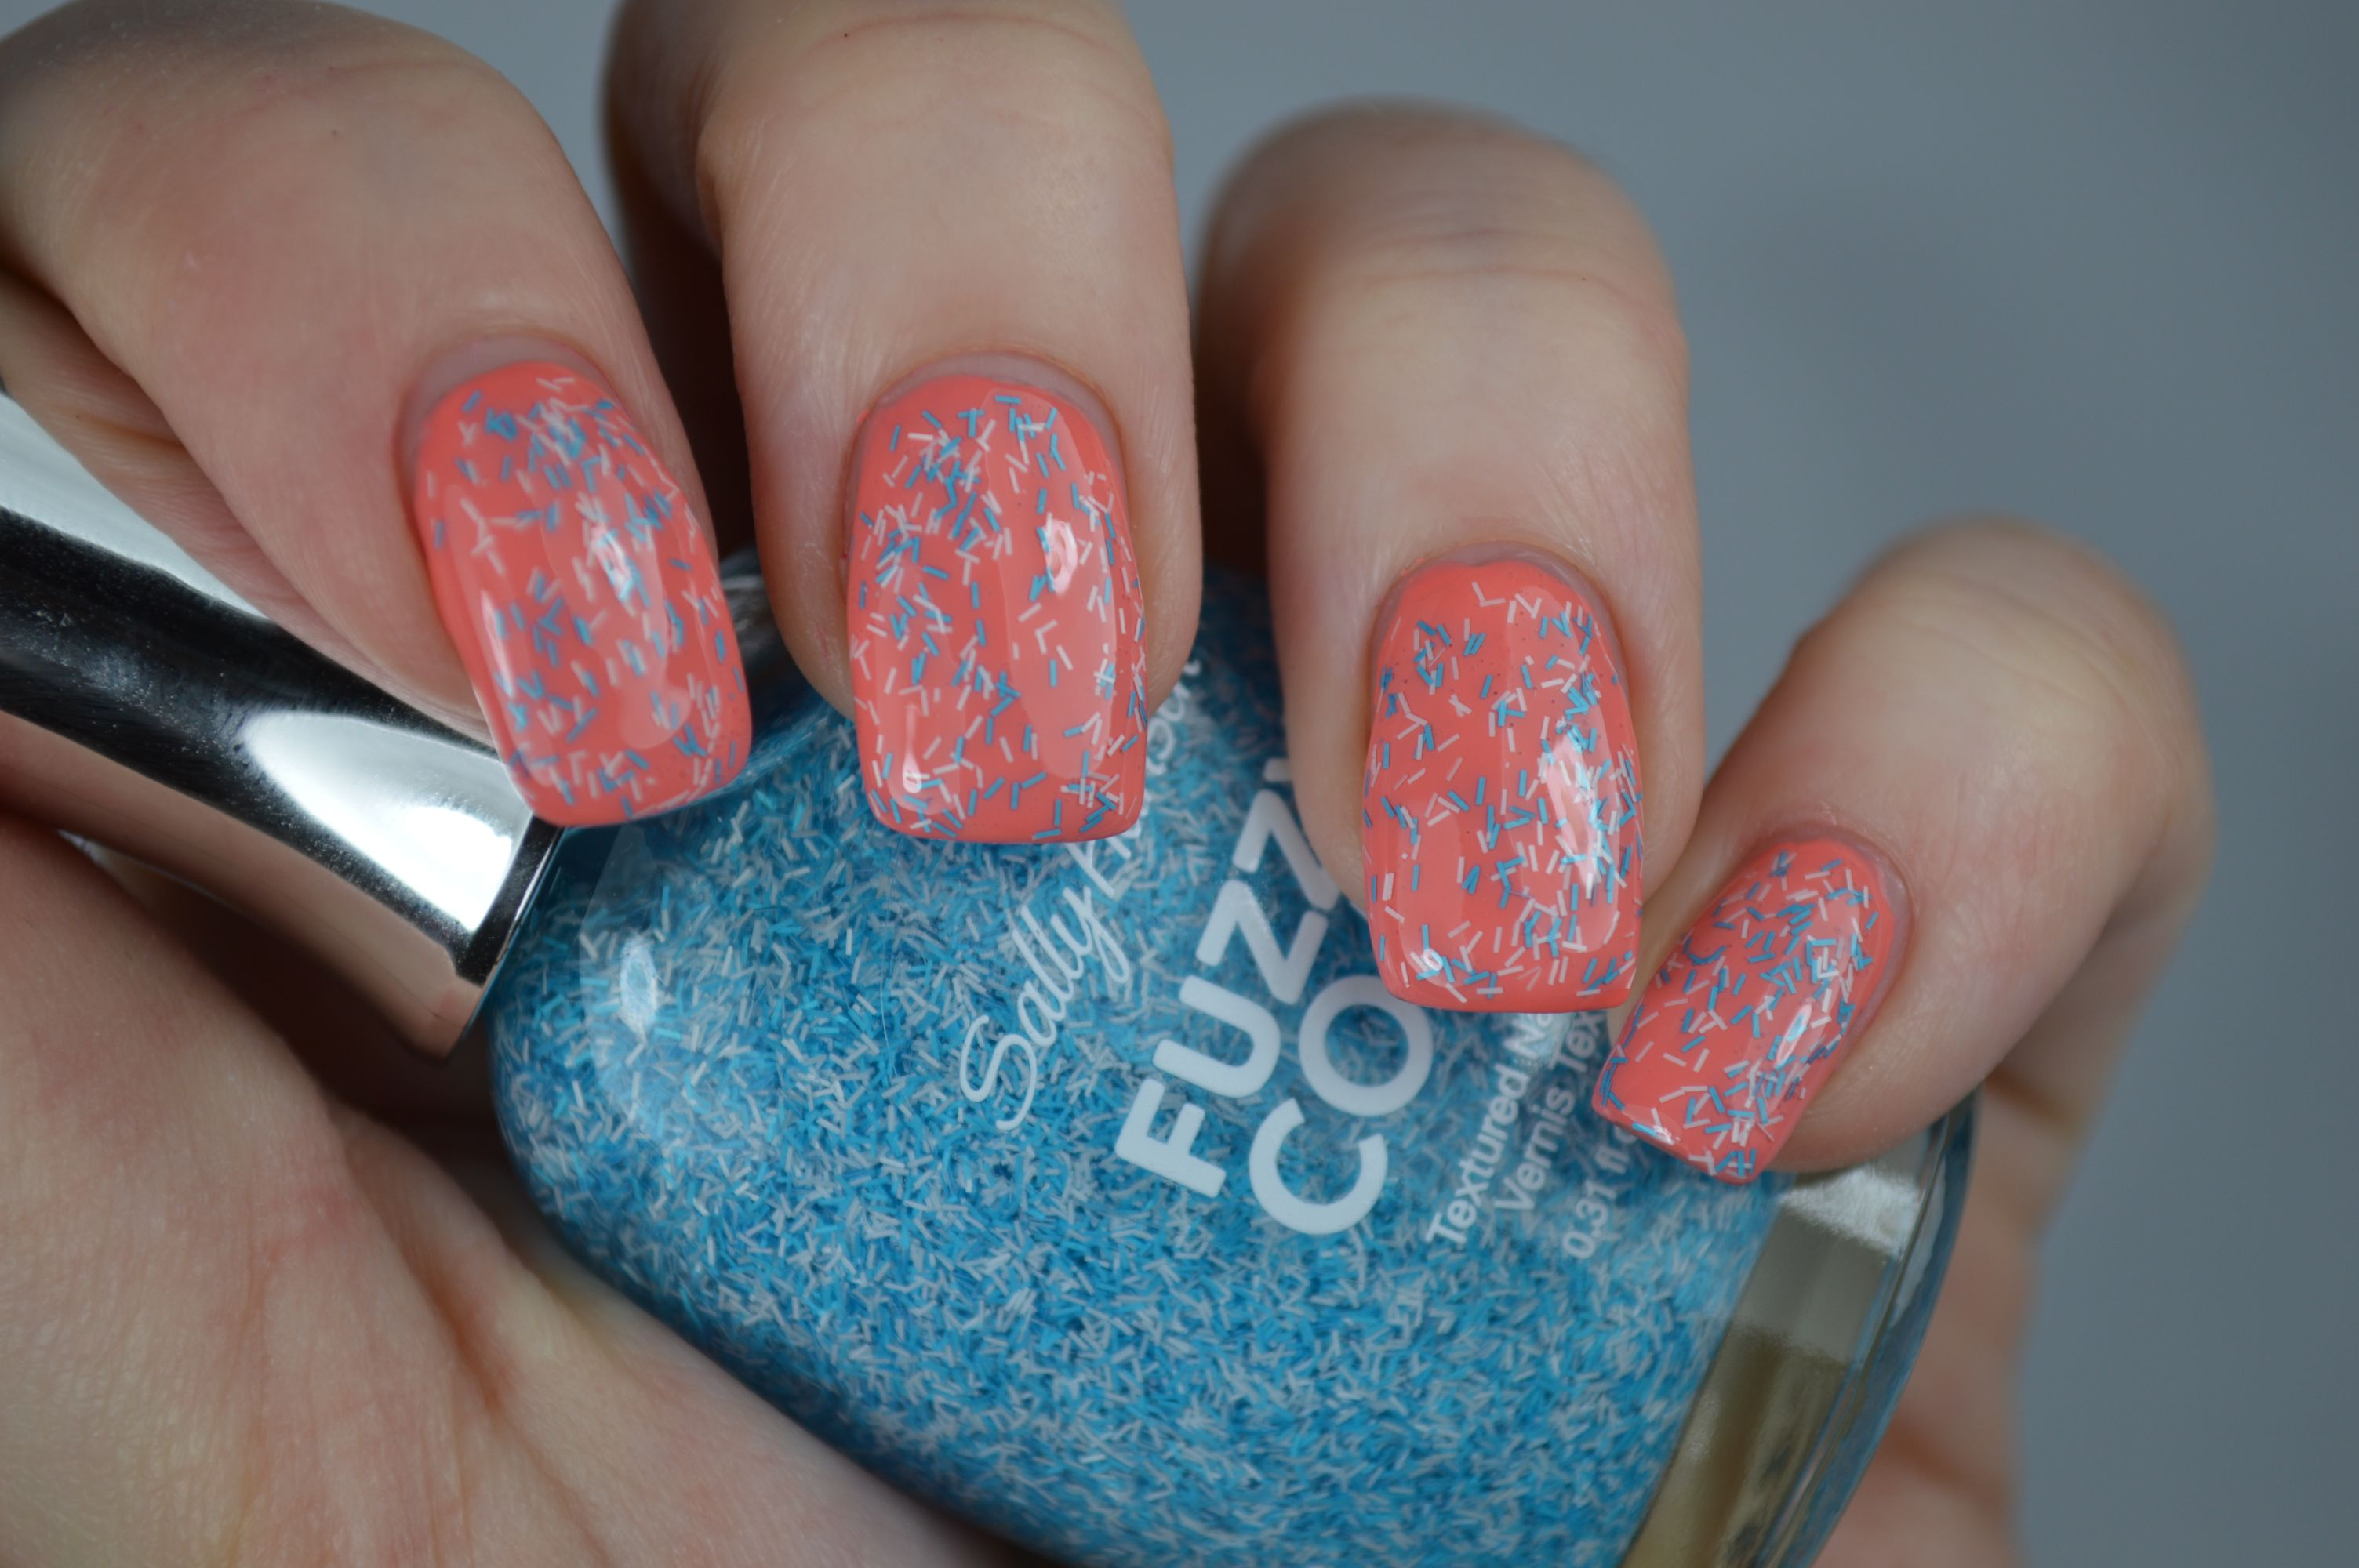 Review Wool Knot Sally Hansen Fuzzy Coat Peach of Cake